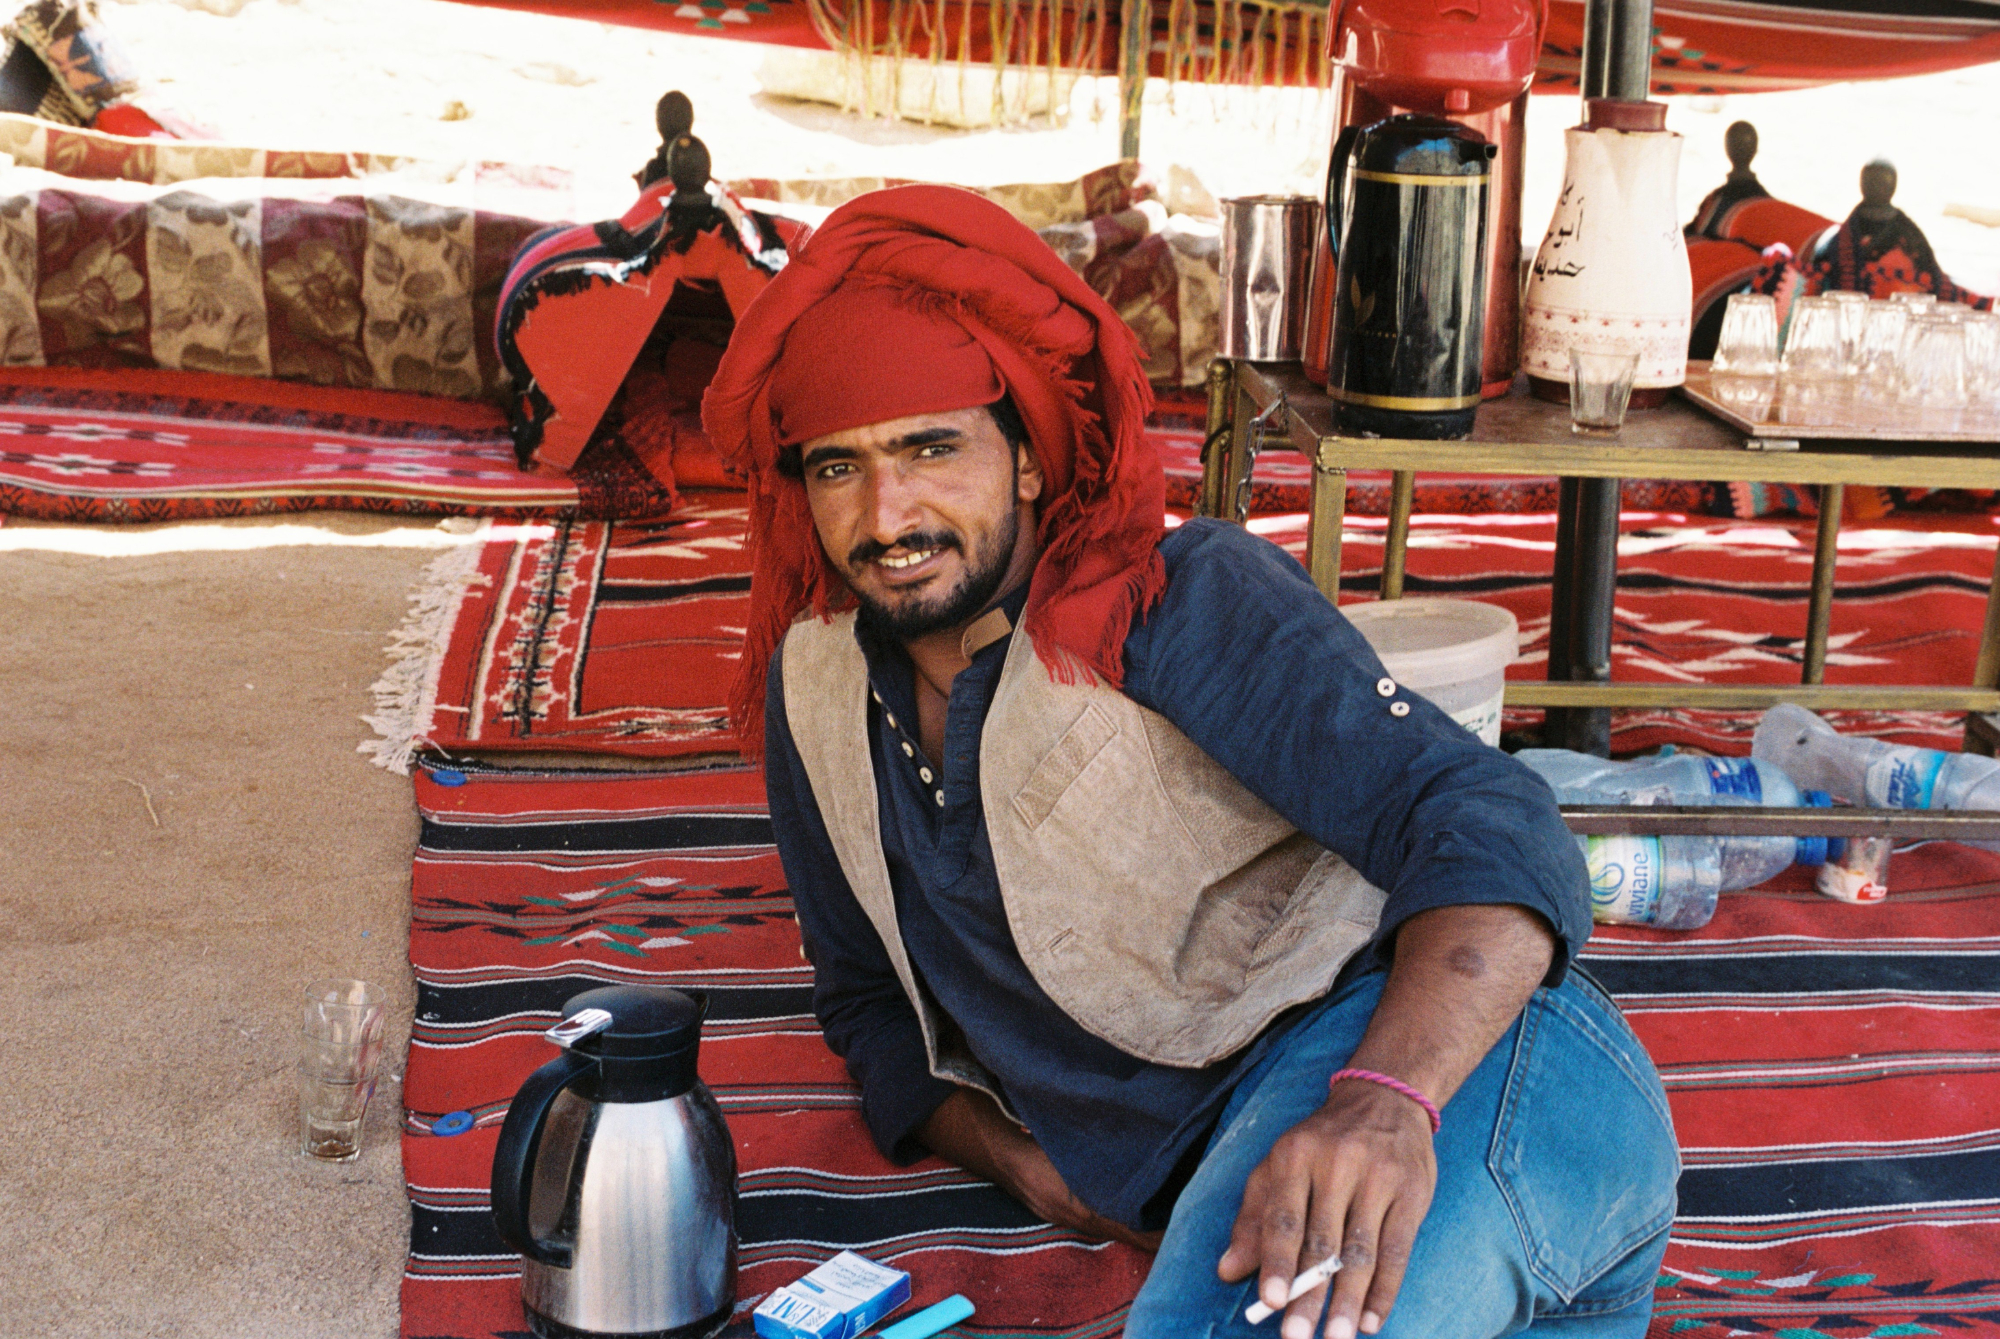 A Bedouin guide inside the ancient city of Petra relaxes with tea and a cigarette under the hot afternoon sun.